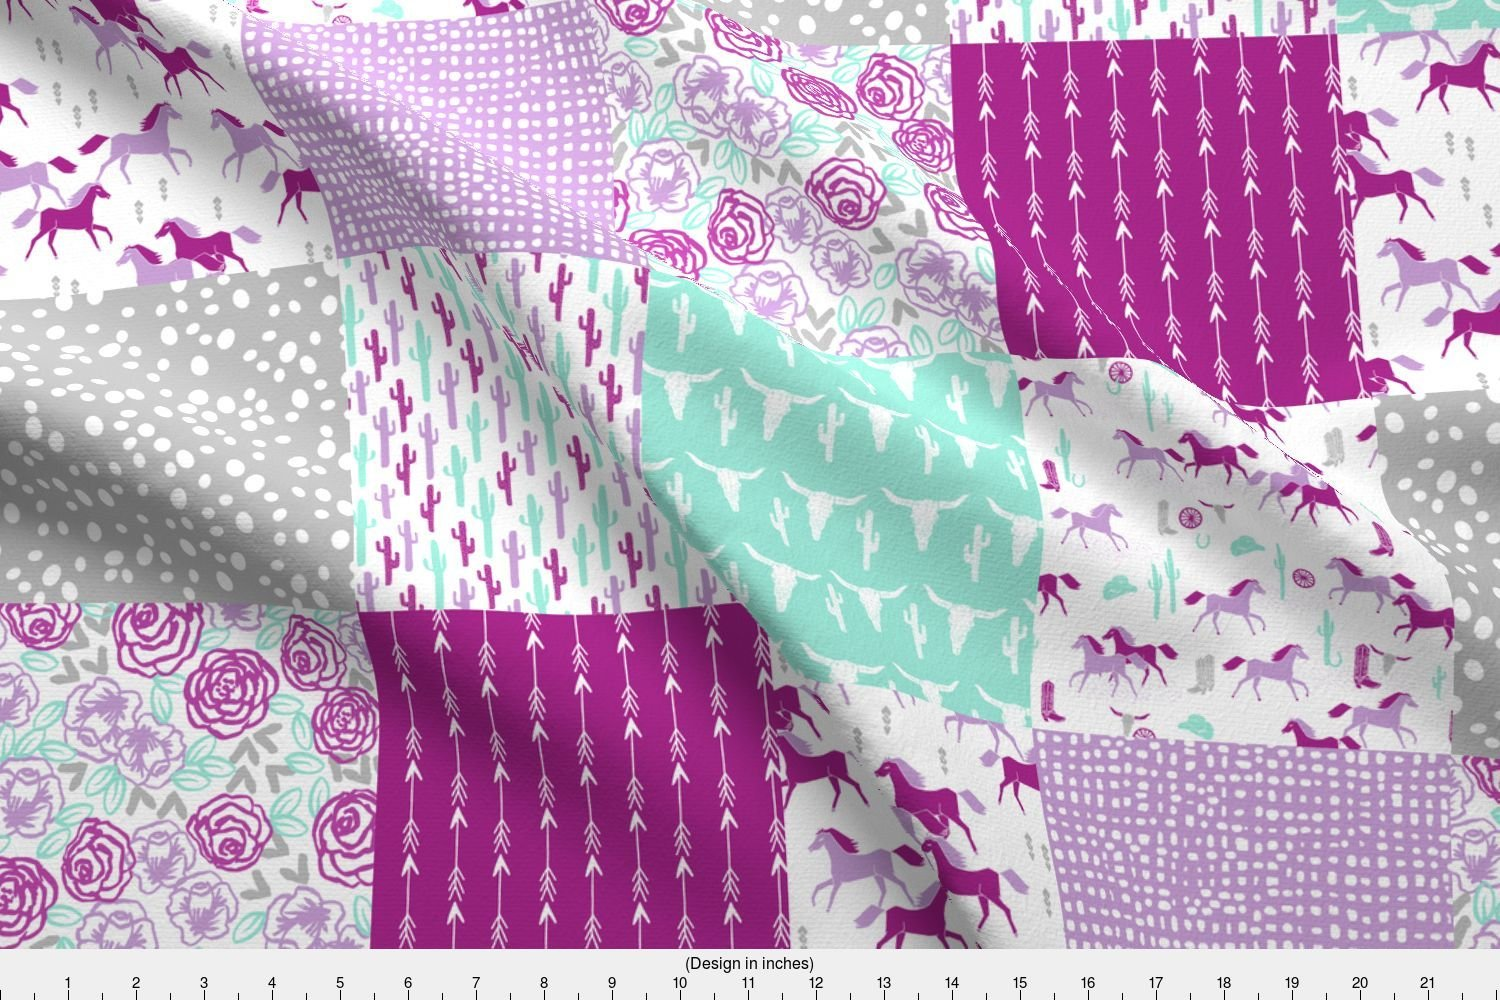 Spoonflower cheater quilt fabric horses quilt purple grey and mint cheater quilt wholecloth baby nursery quilts girls decor by andrea lauren printed on